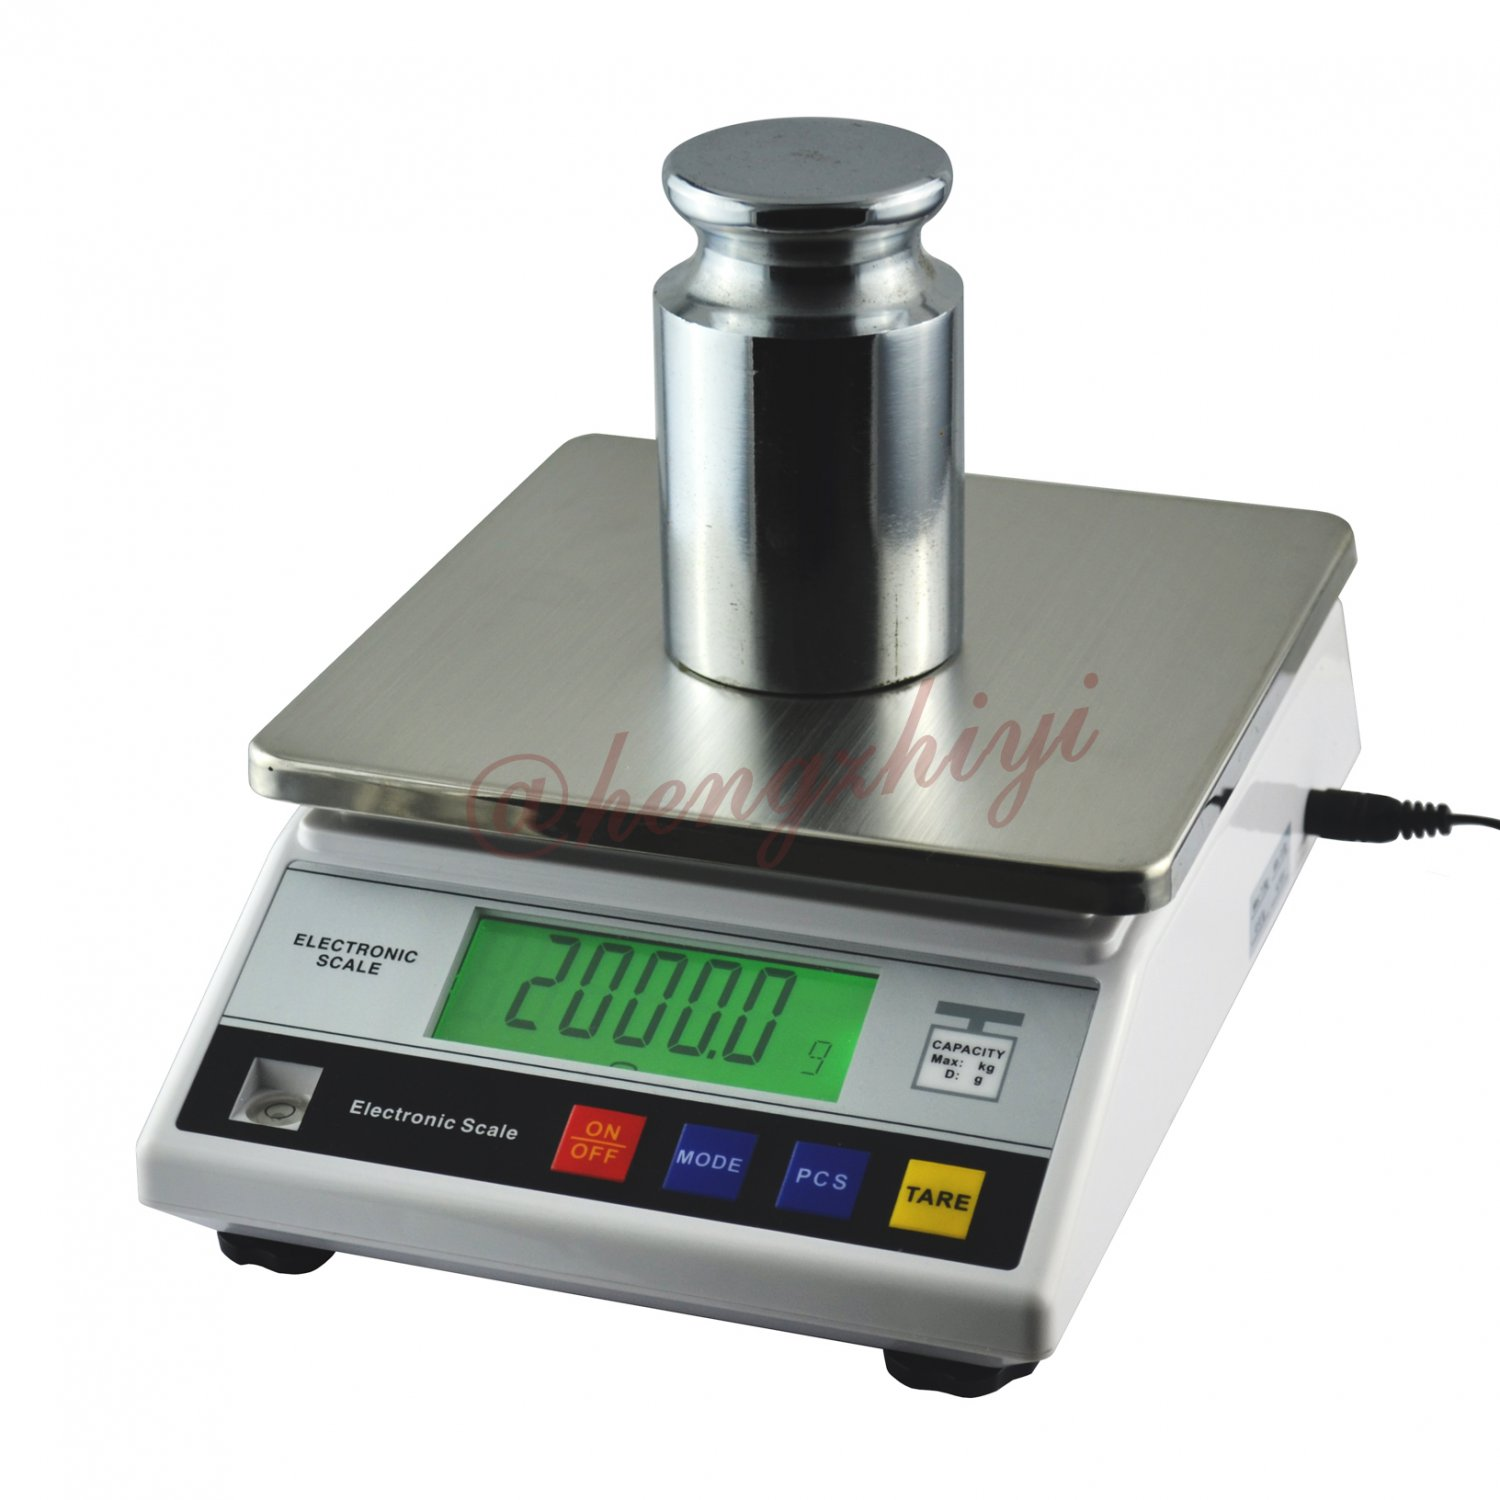 10kg x 0.1g Digital Accurate Balance w Counting Table Top Scale Industrial Scale, Free Shipping